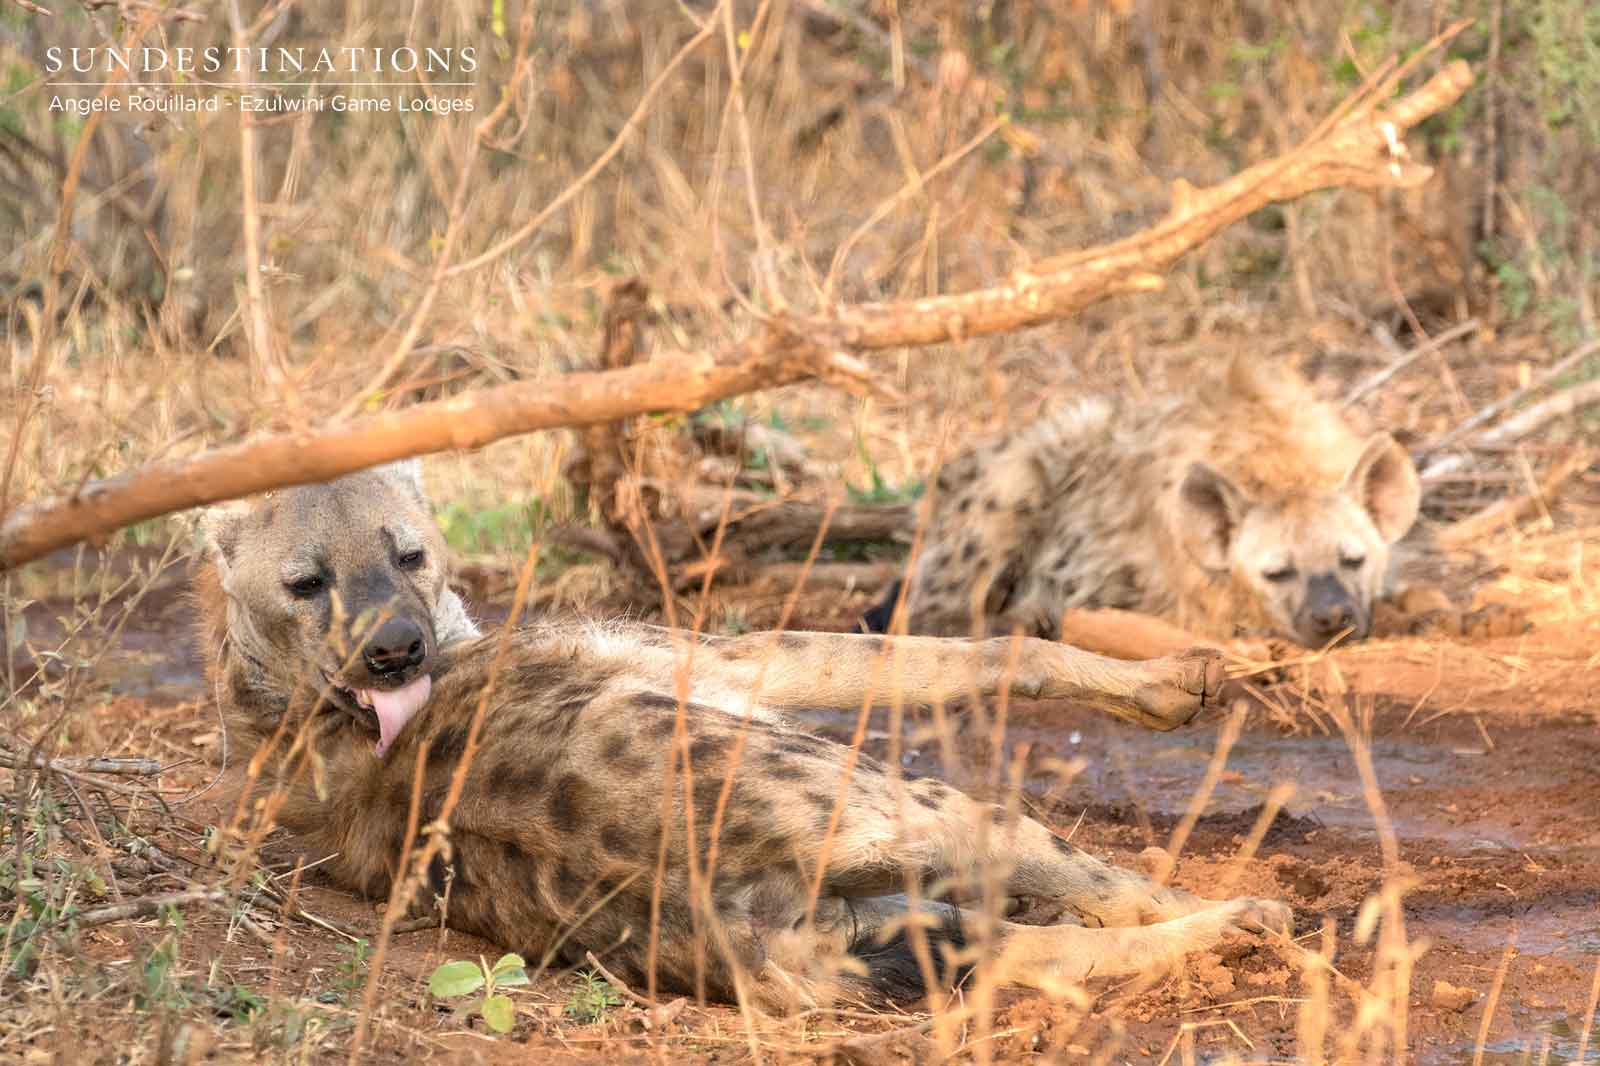 Hyena at Ezulwini Game Lodges